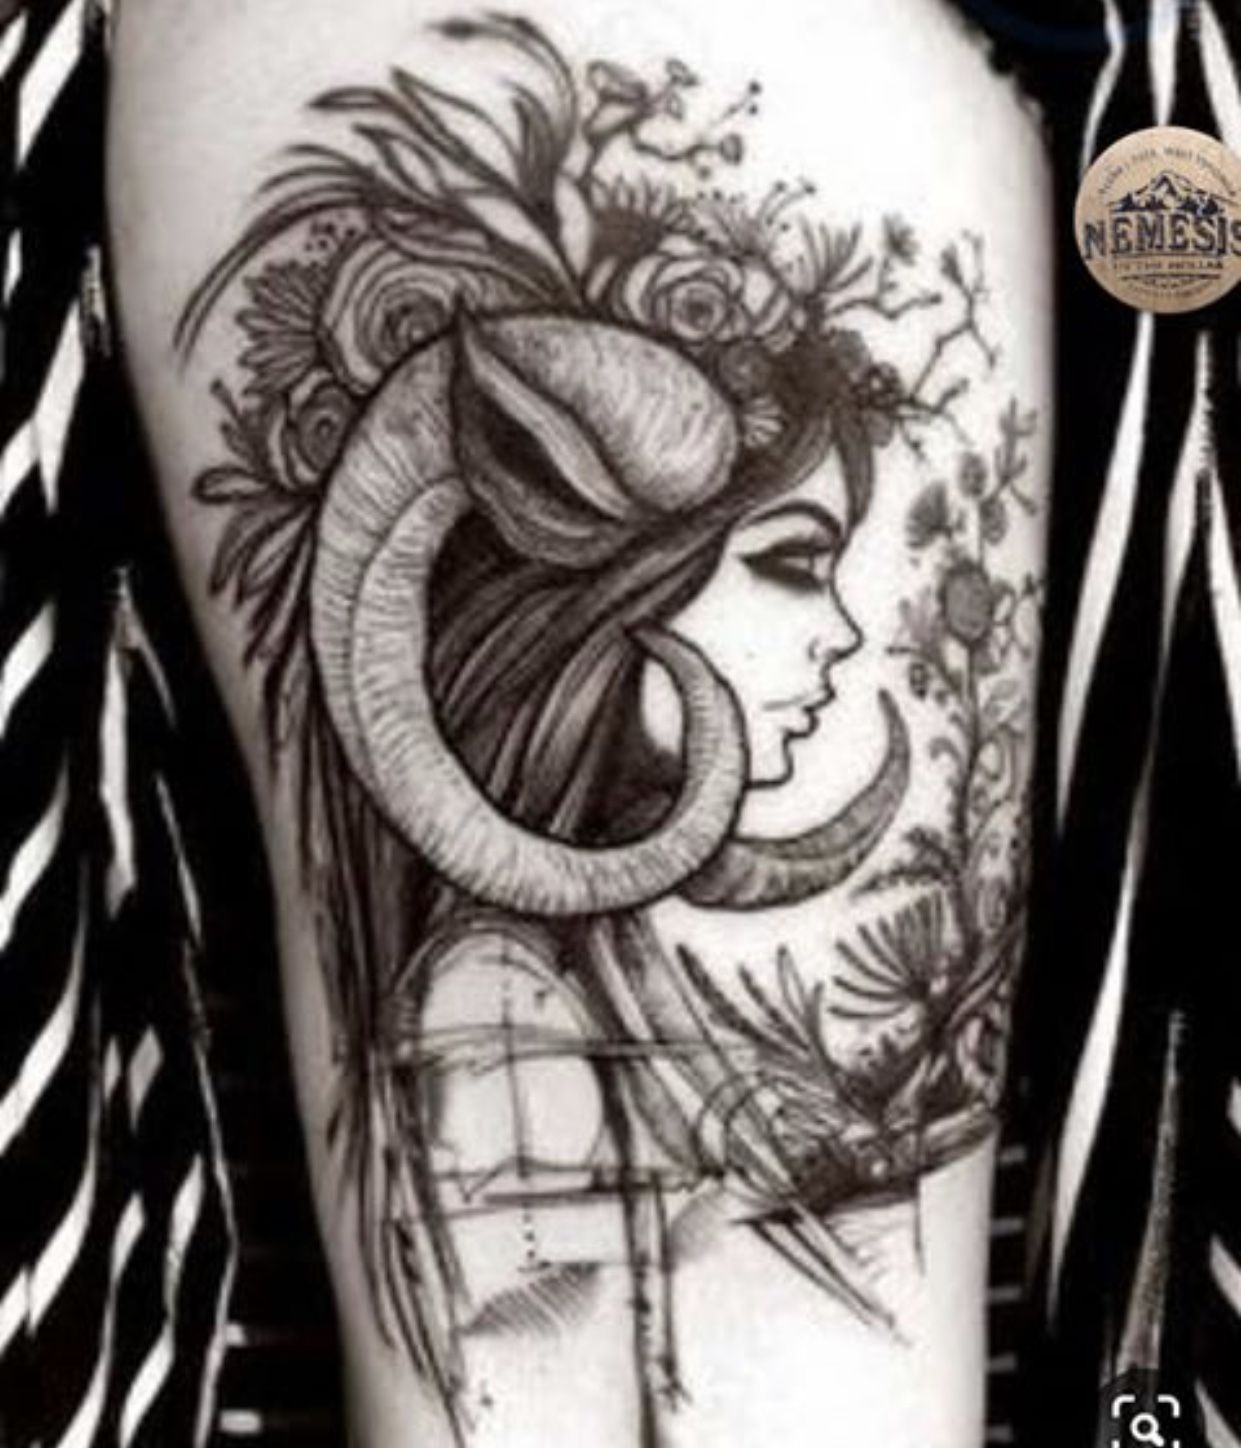 Pin By Malin Alfredsson On Tattoo Inspiration In 2020 Aries Tattoo Taurus Tattoos Tattoos